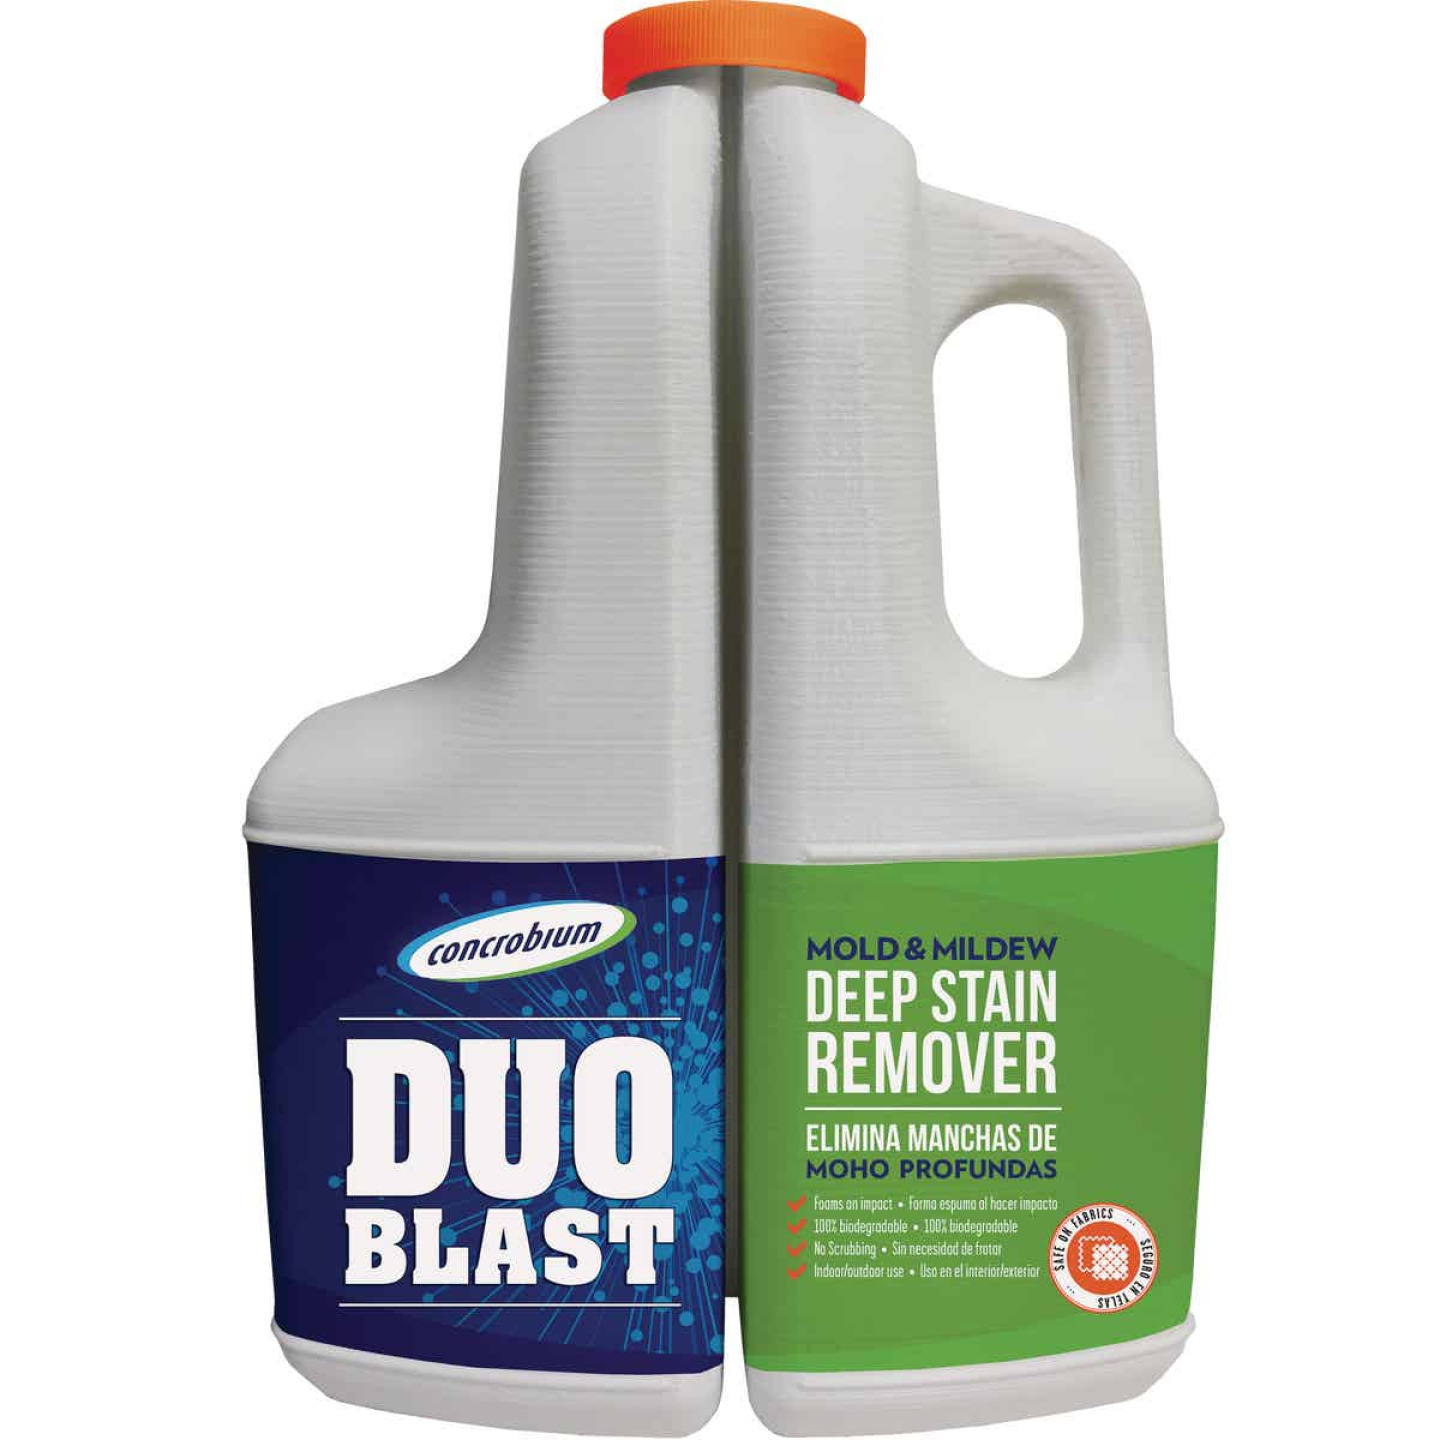 Concrobium 1 Gal. Duo Blast Mold & Mildew Deep Stain Remover Image 1